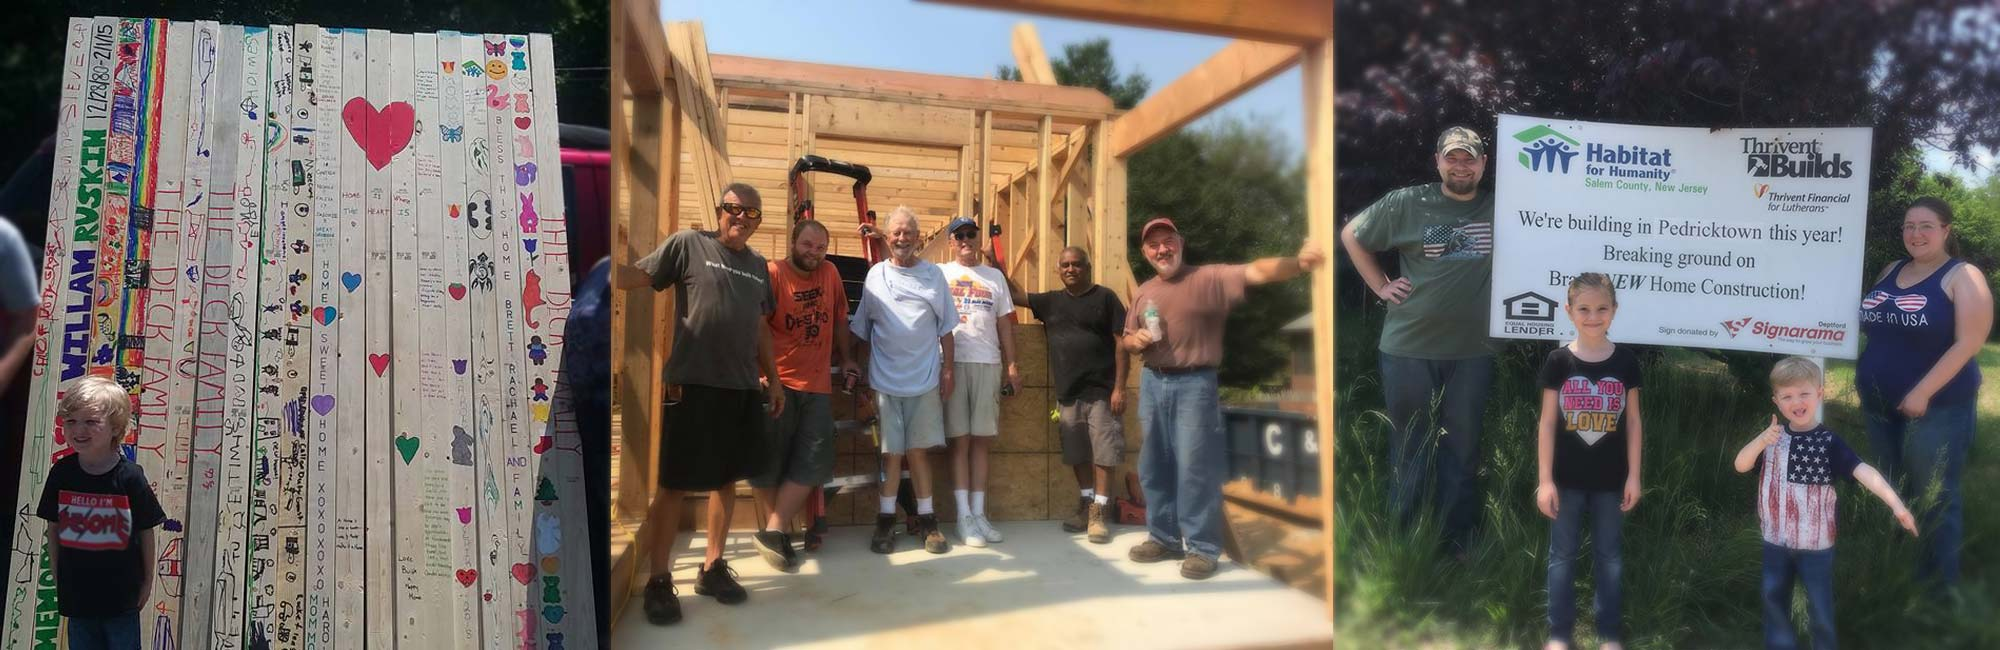 Group standing in middle of framing for new home